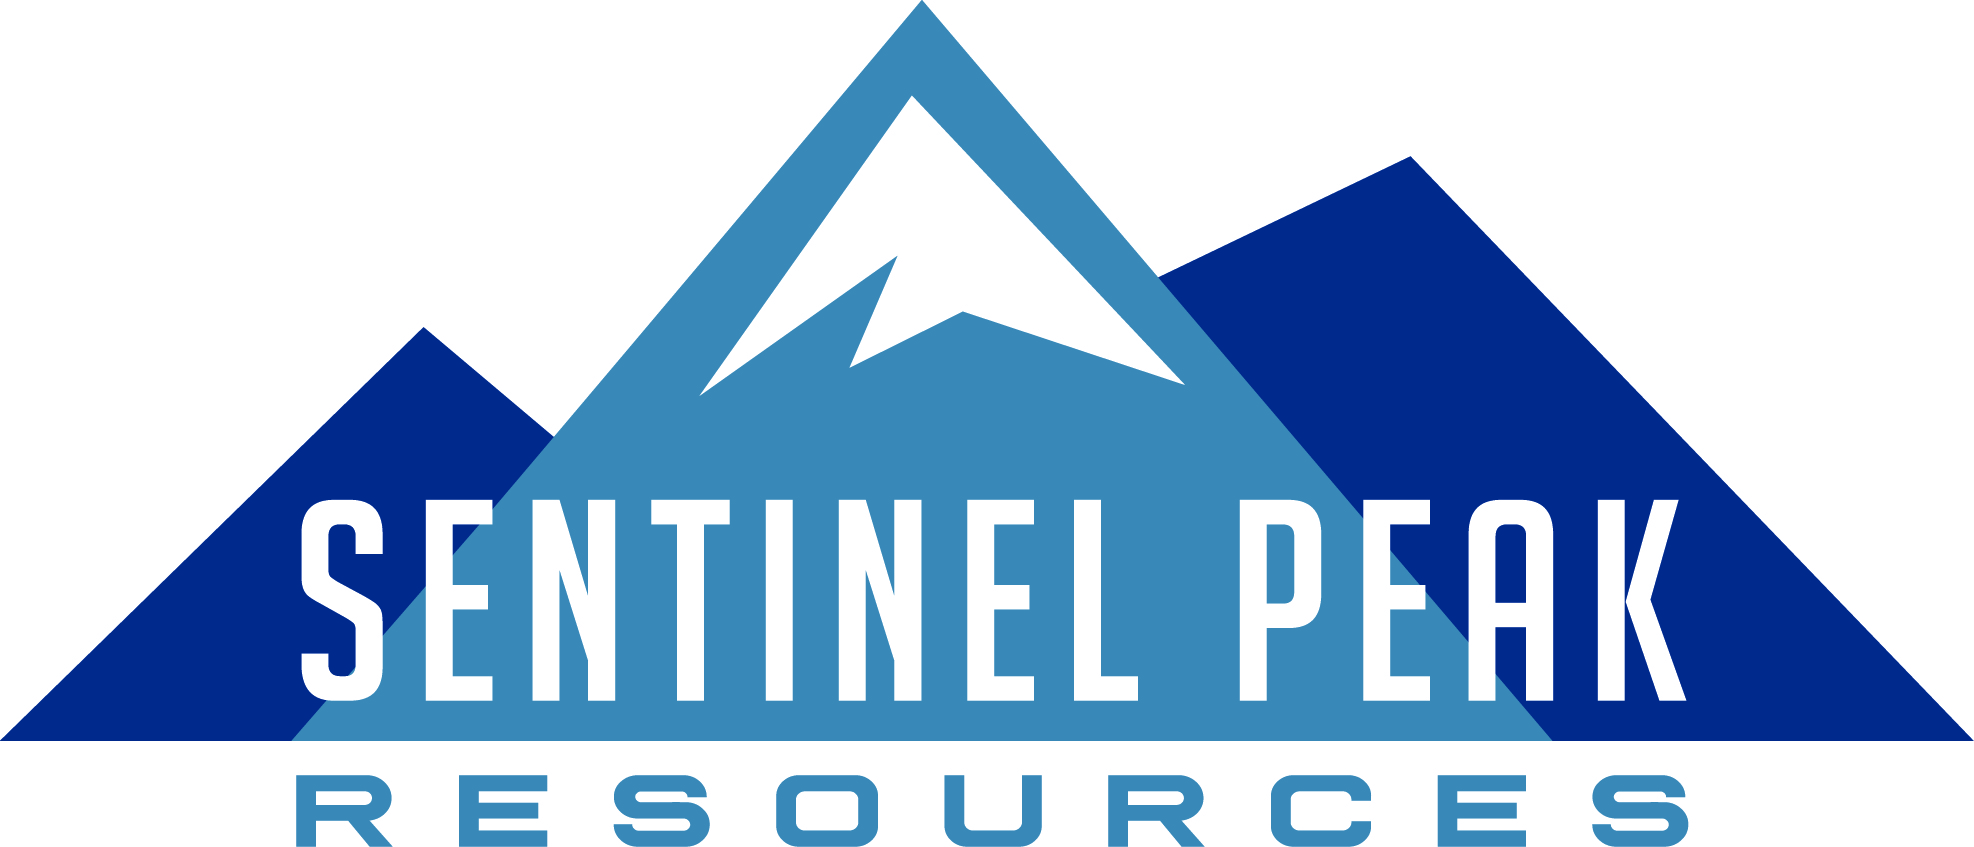 Sentinel Peak Resources